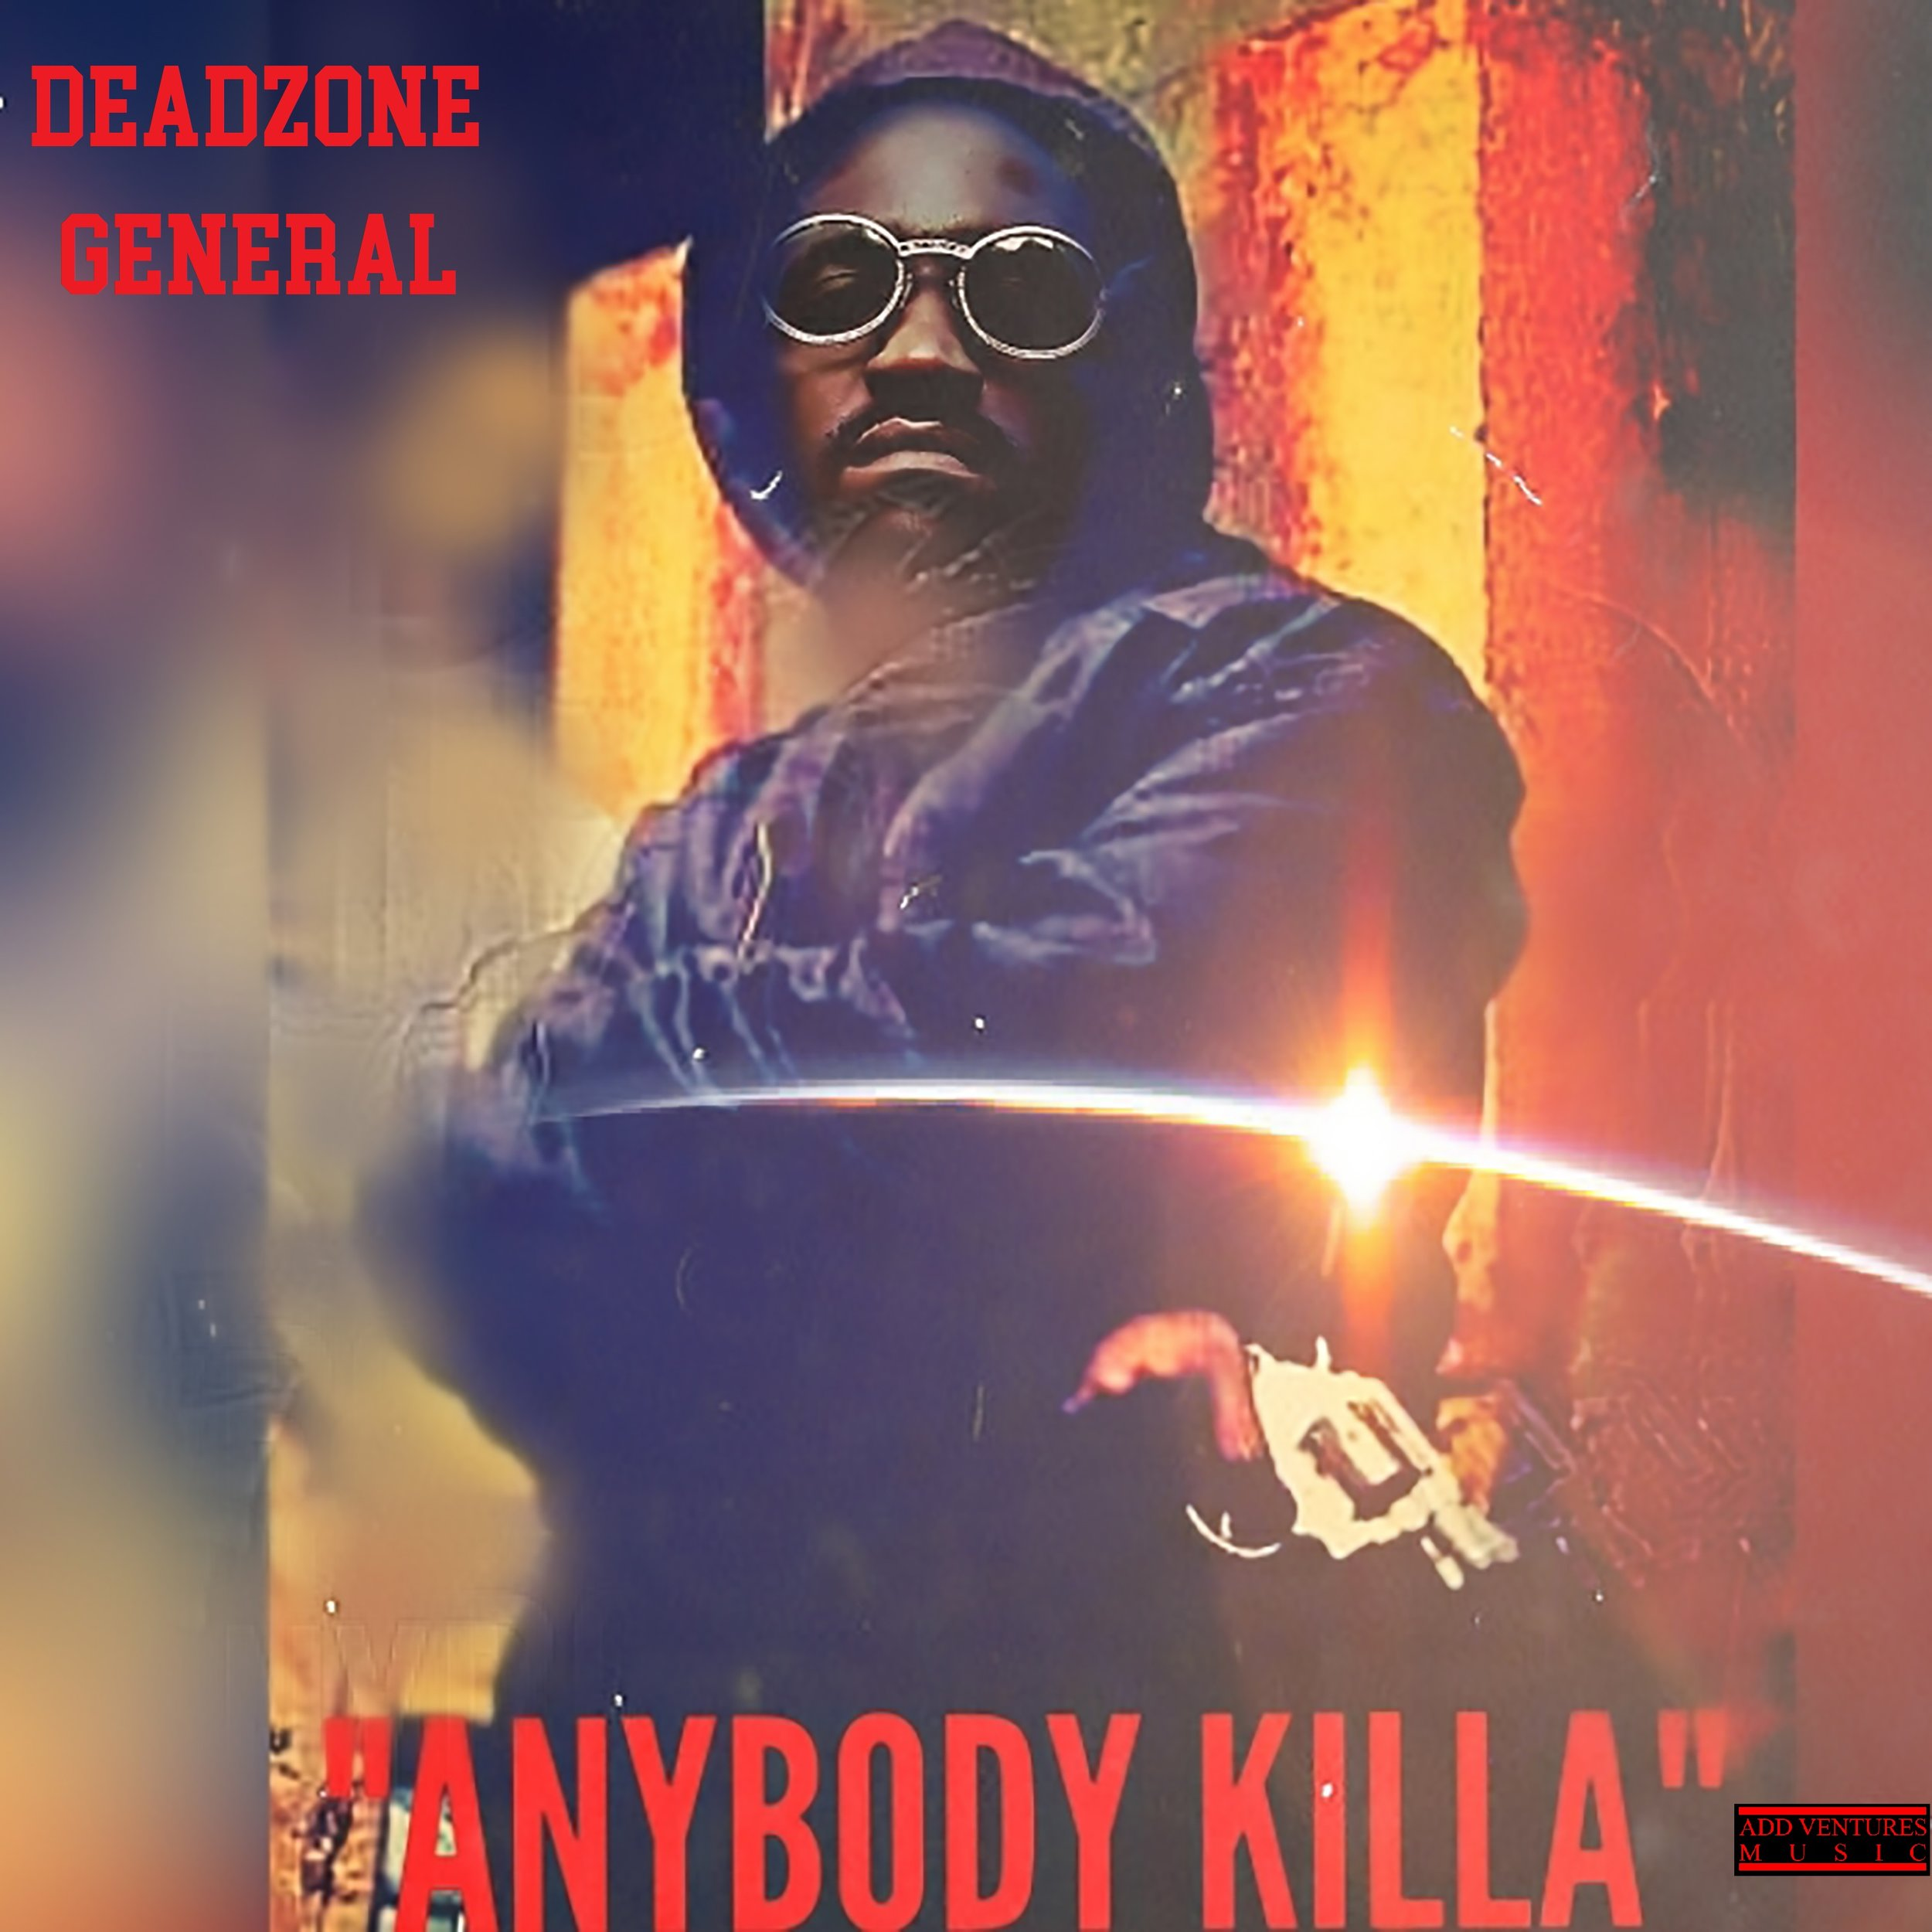 Deadzone General - Anybody Killa - Explicit Single use.jpg